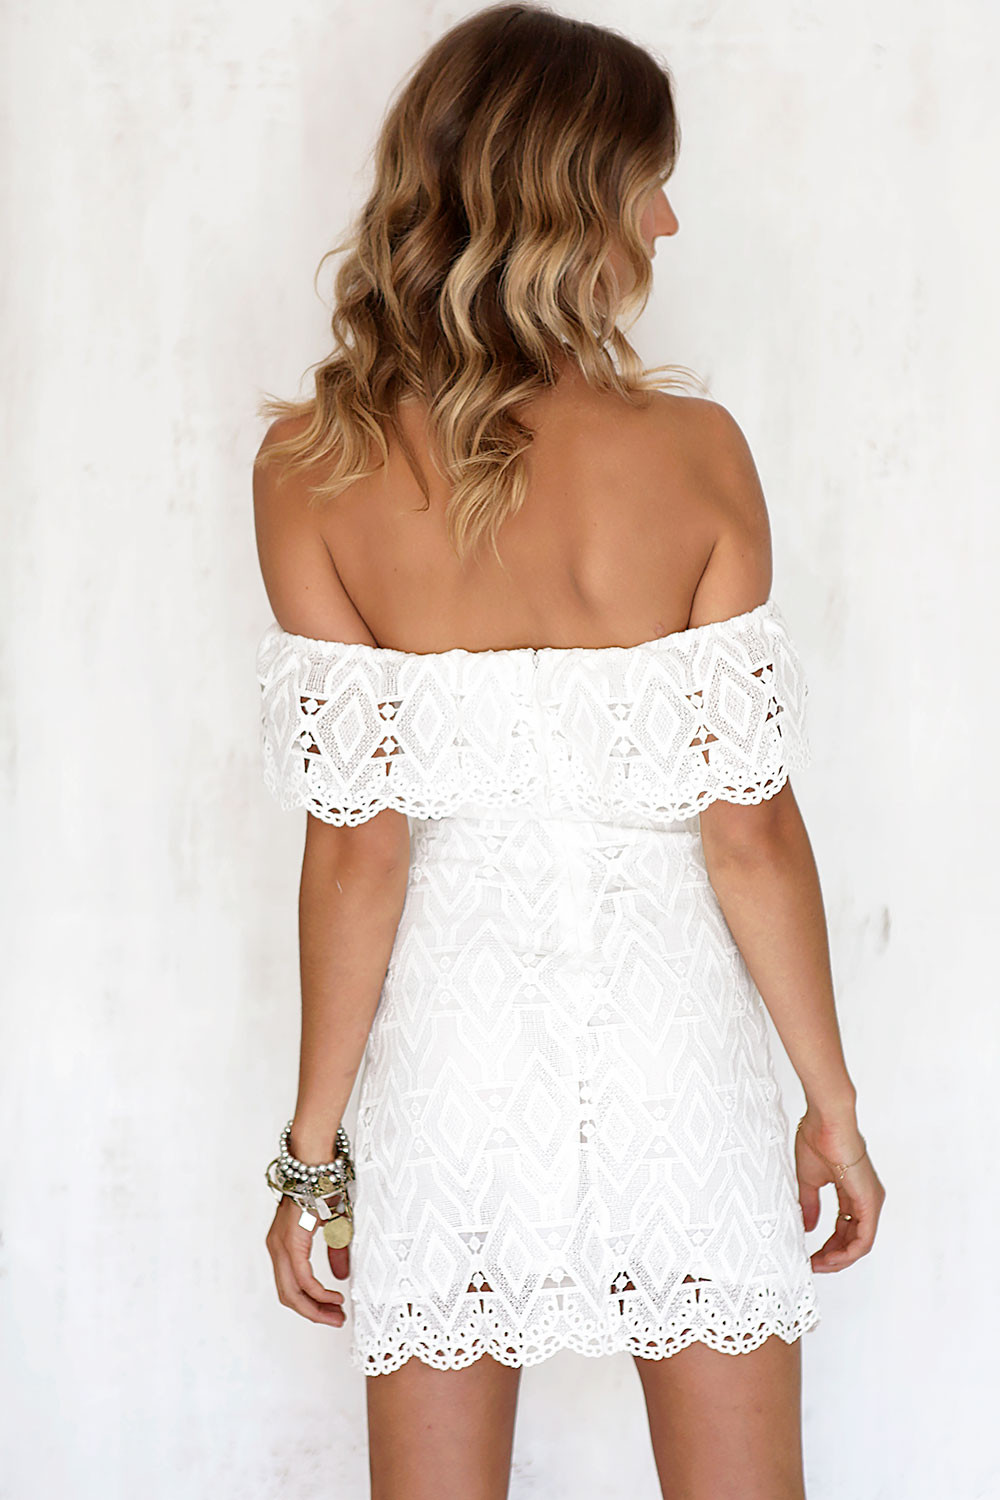 Sexy off the Shoulder White Lace Dress Women Casual vestido de festa feminino Monos Summer Style High Slit Party Boho Dresses 8